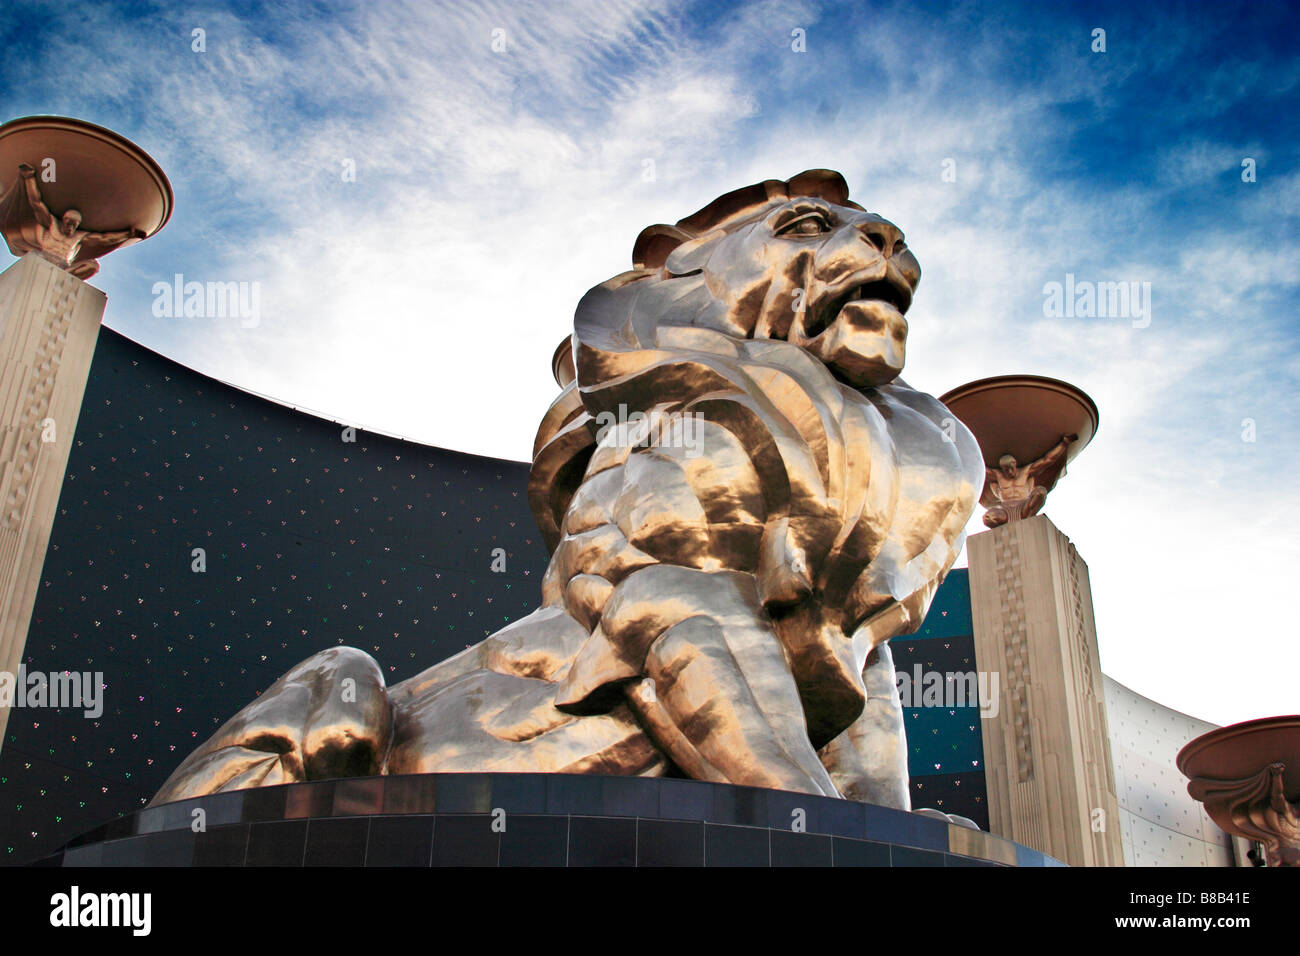 Golden Lion at MGM Grand Hotel in Las Vegas Nevada USA - Stock Image